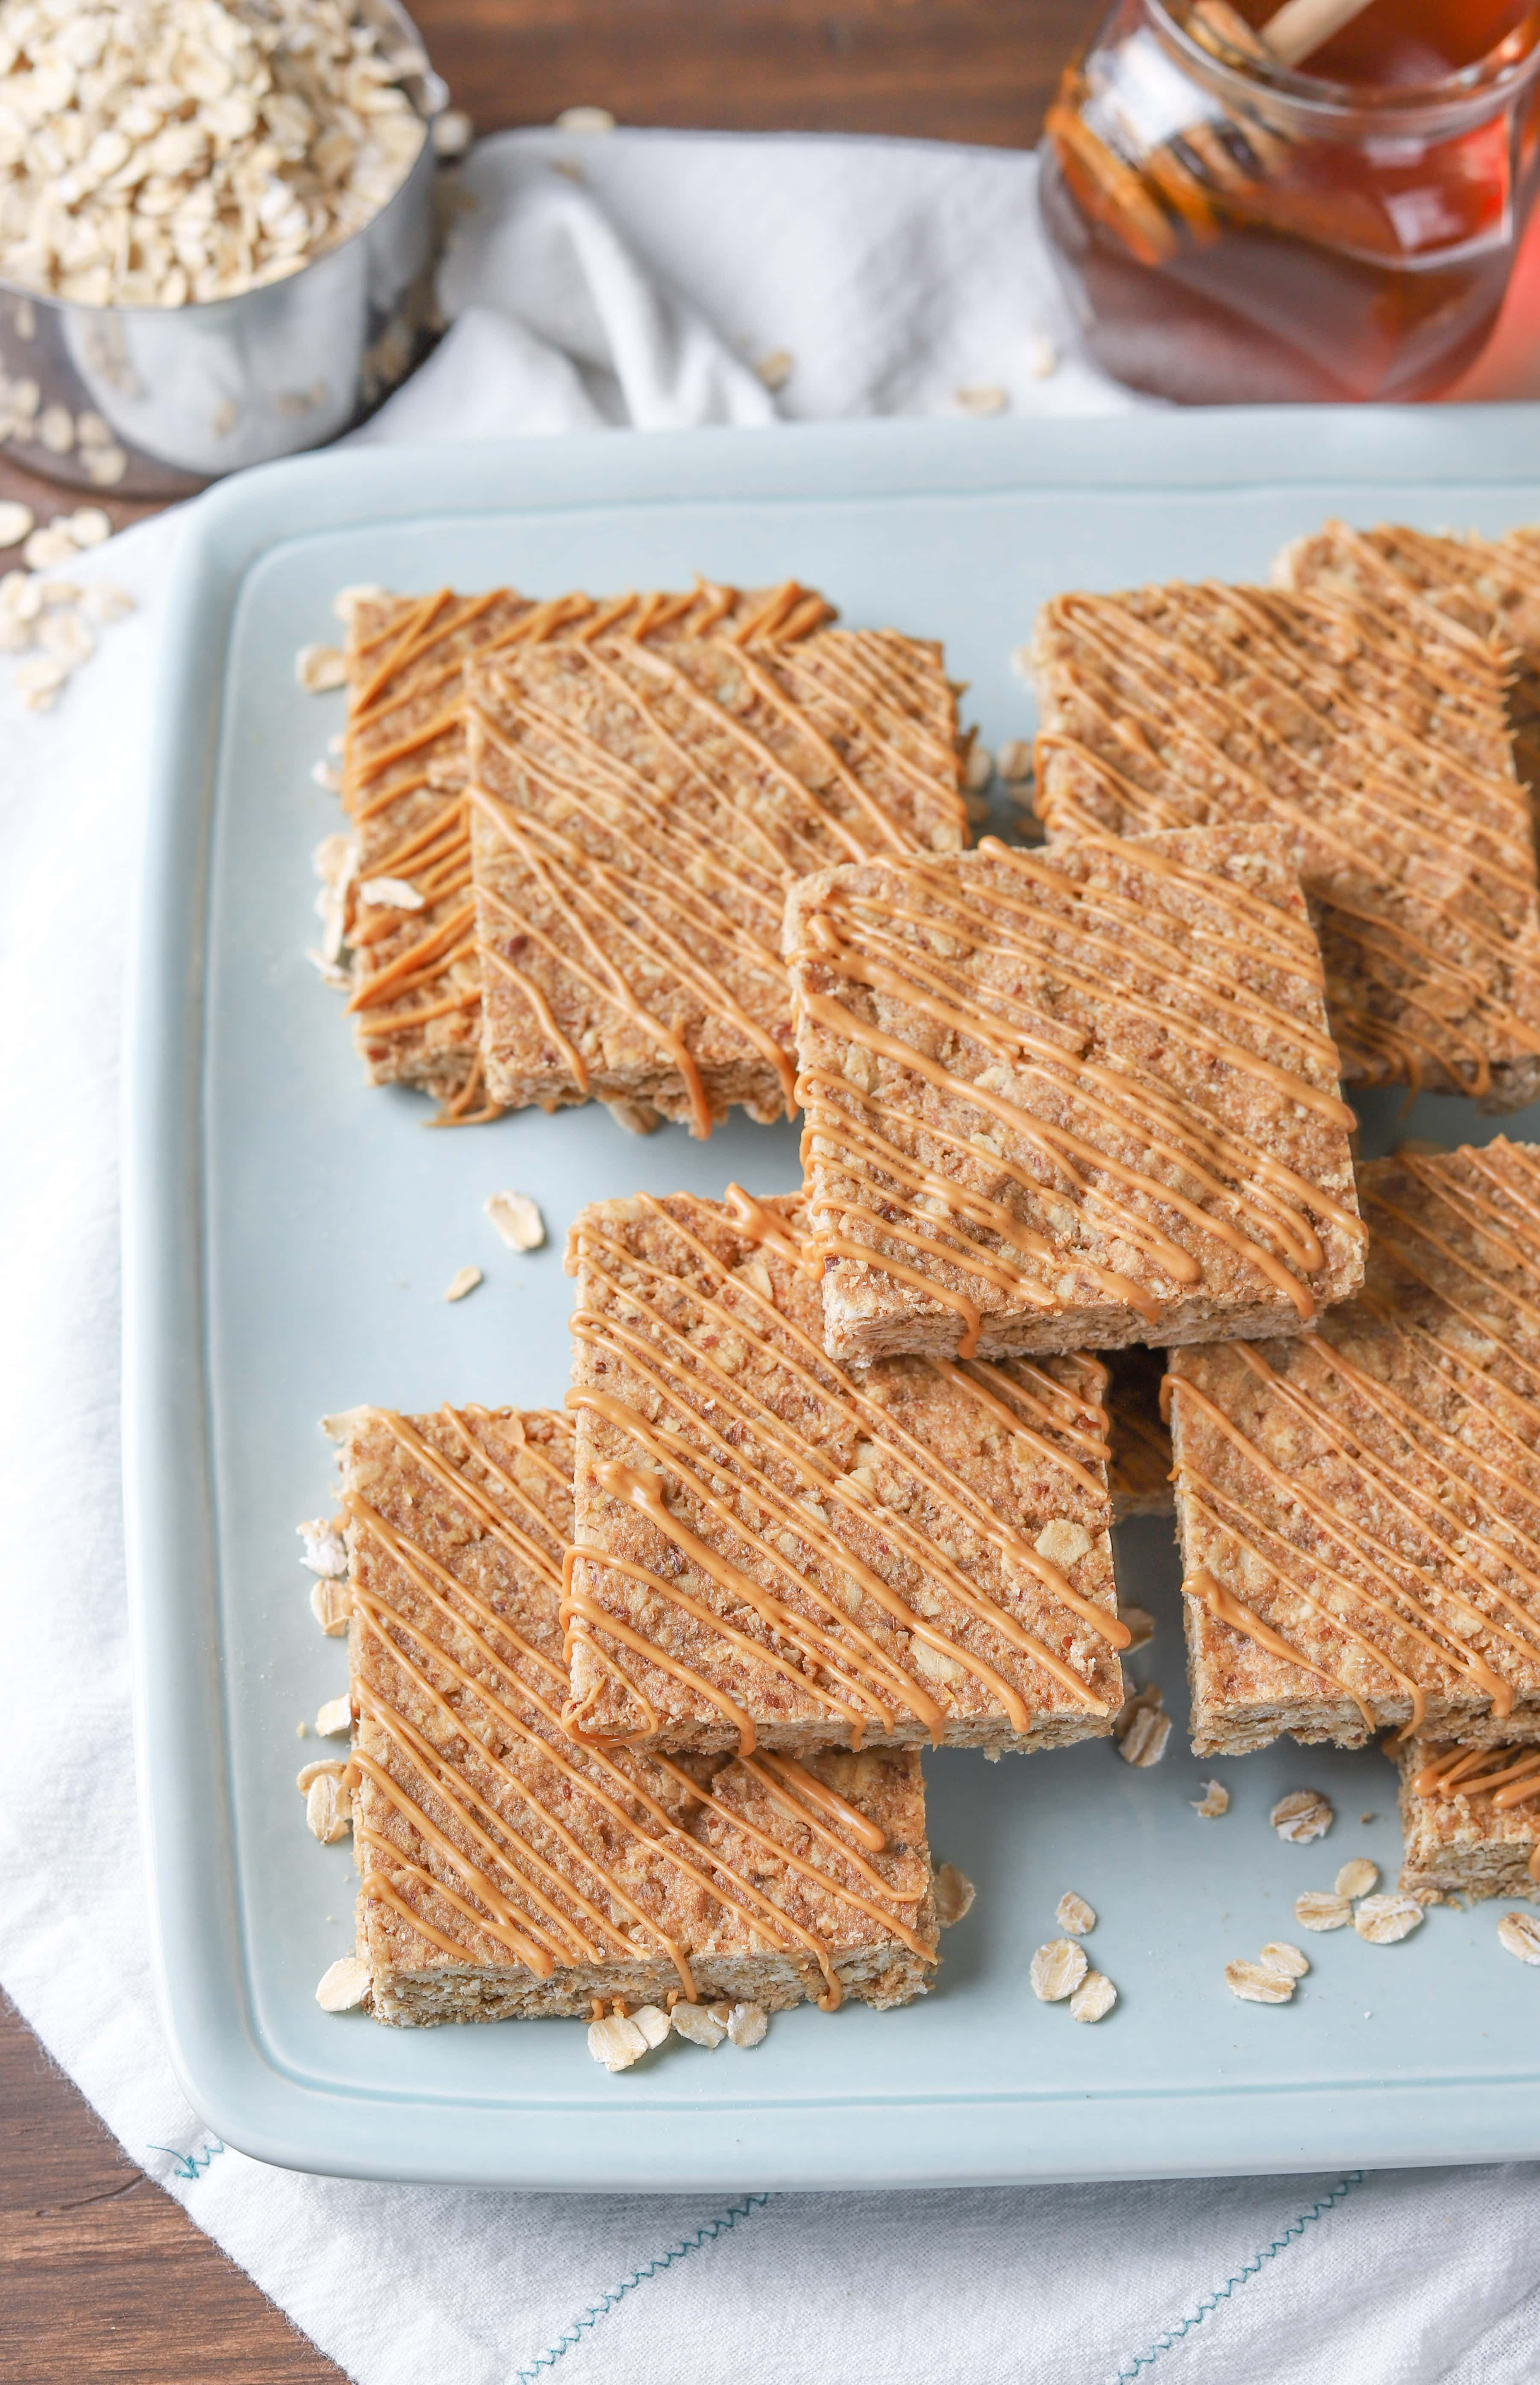 Whole Wheat Soft Baked Peanut Butter Granola Bars Recipe from A Kitchen Addiction